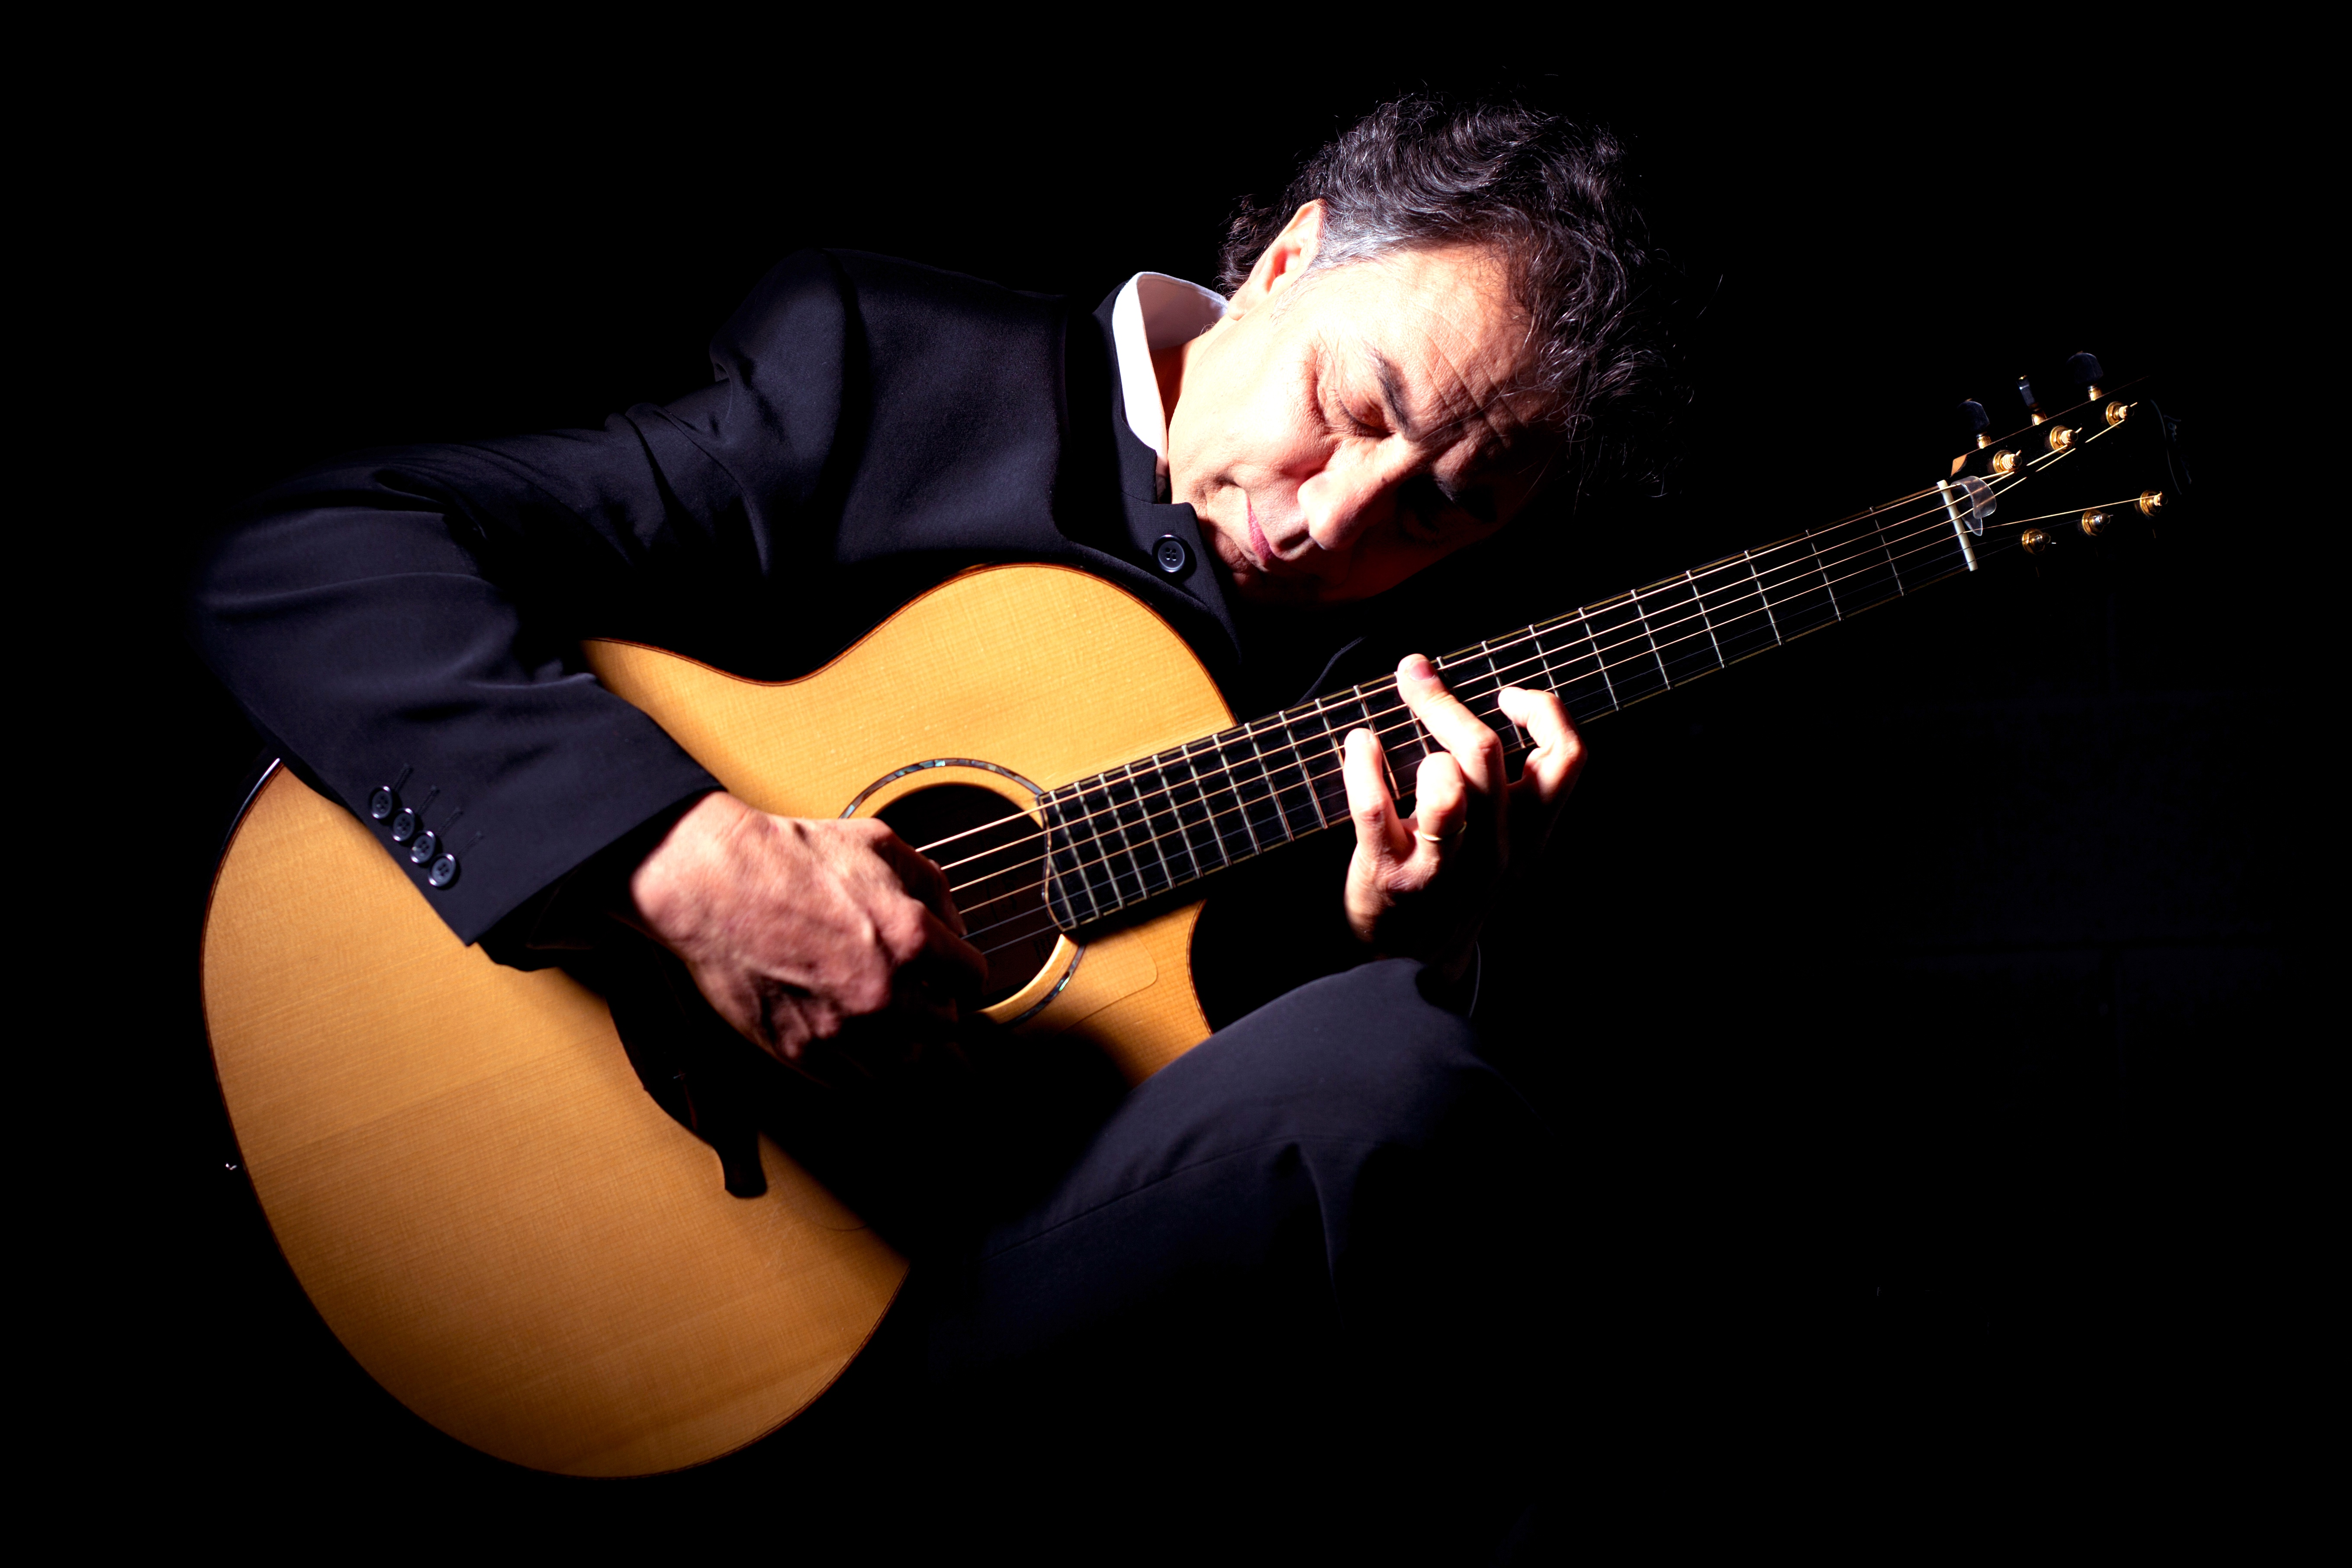 The Axe and Fiddle presents master acoustic guitar player Pierre Bensusan from France, passing through on his 2017 USA Tour